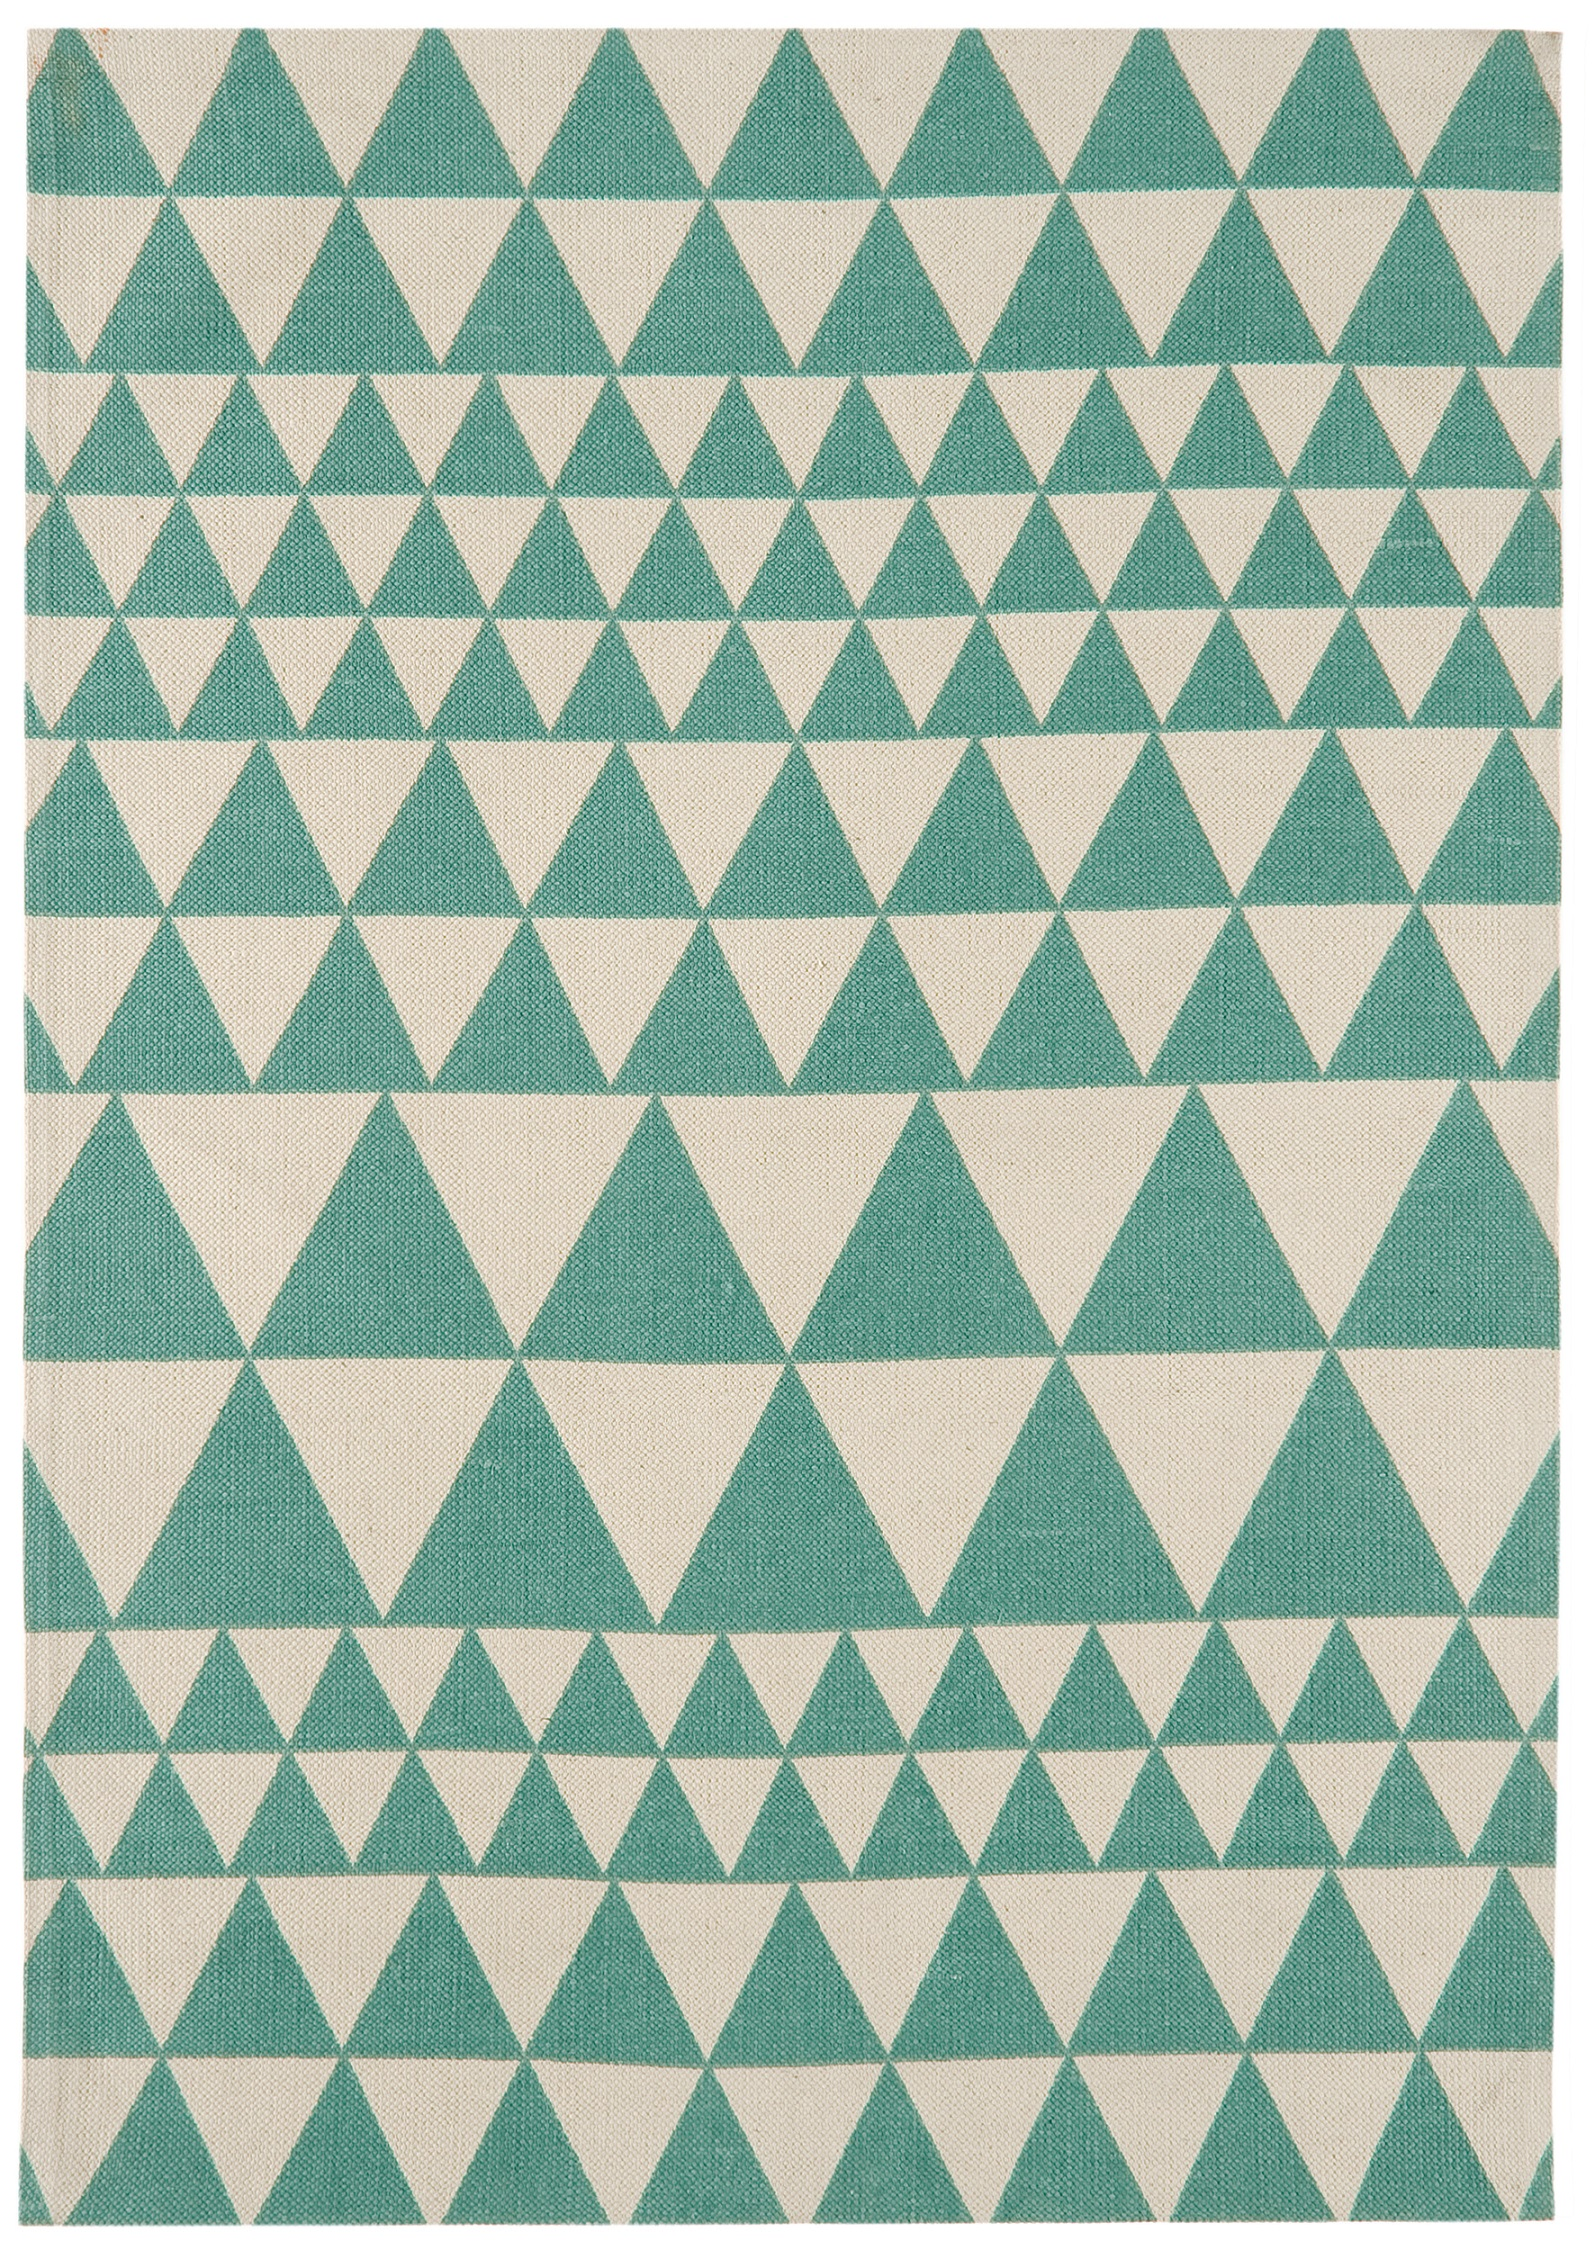 Koberec ONIX 160x230 cm ON09 Triangles Teal